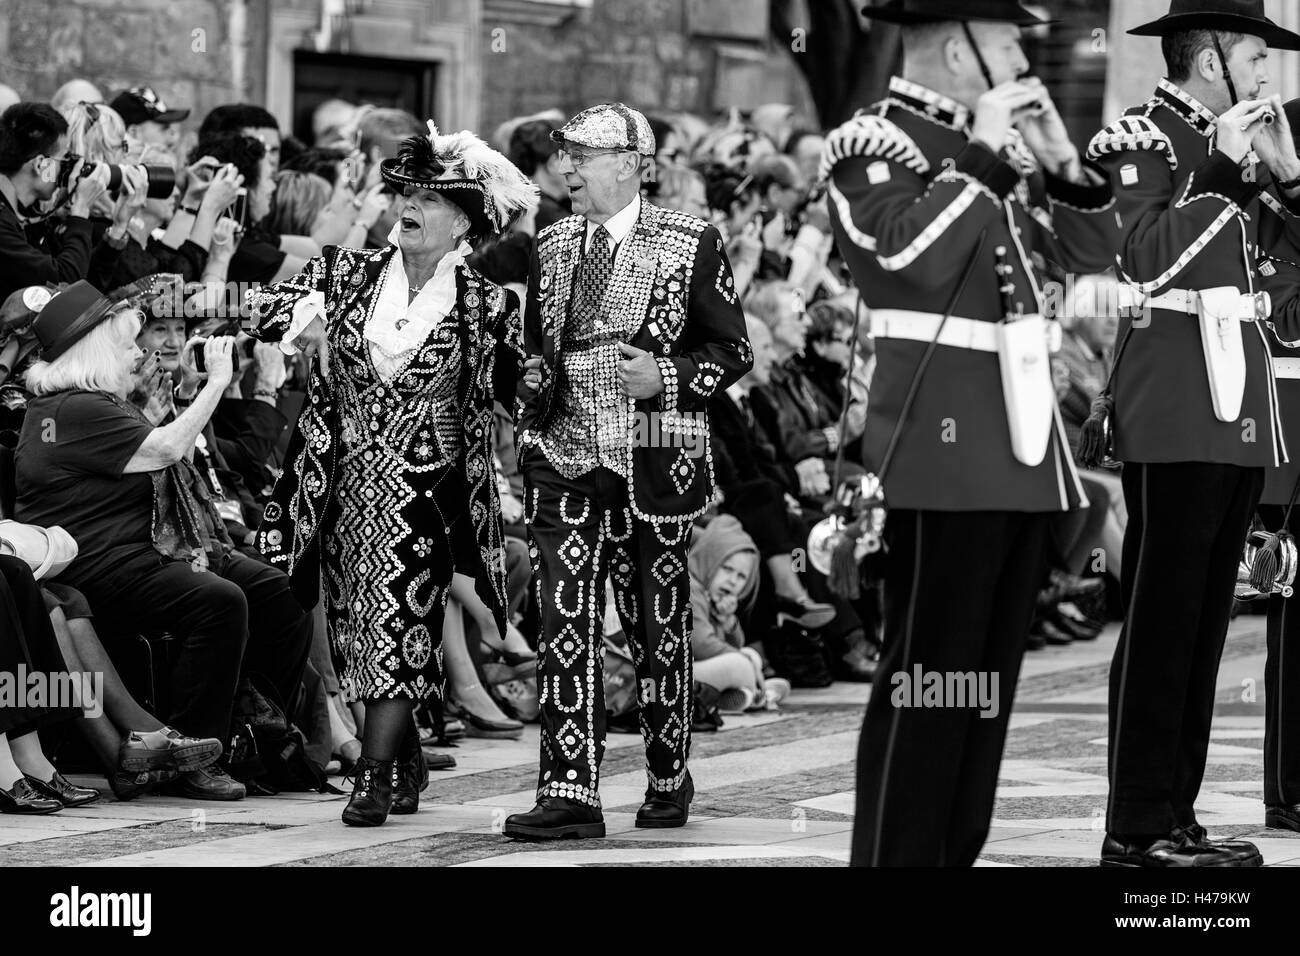 Pearly Kings and Queens Sing Traditional Songs At They Parade Around The Guildhall Yard, London, England - Stock Image